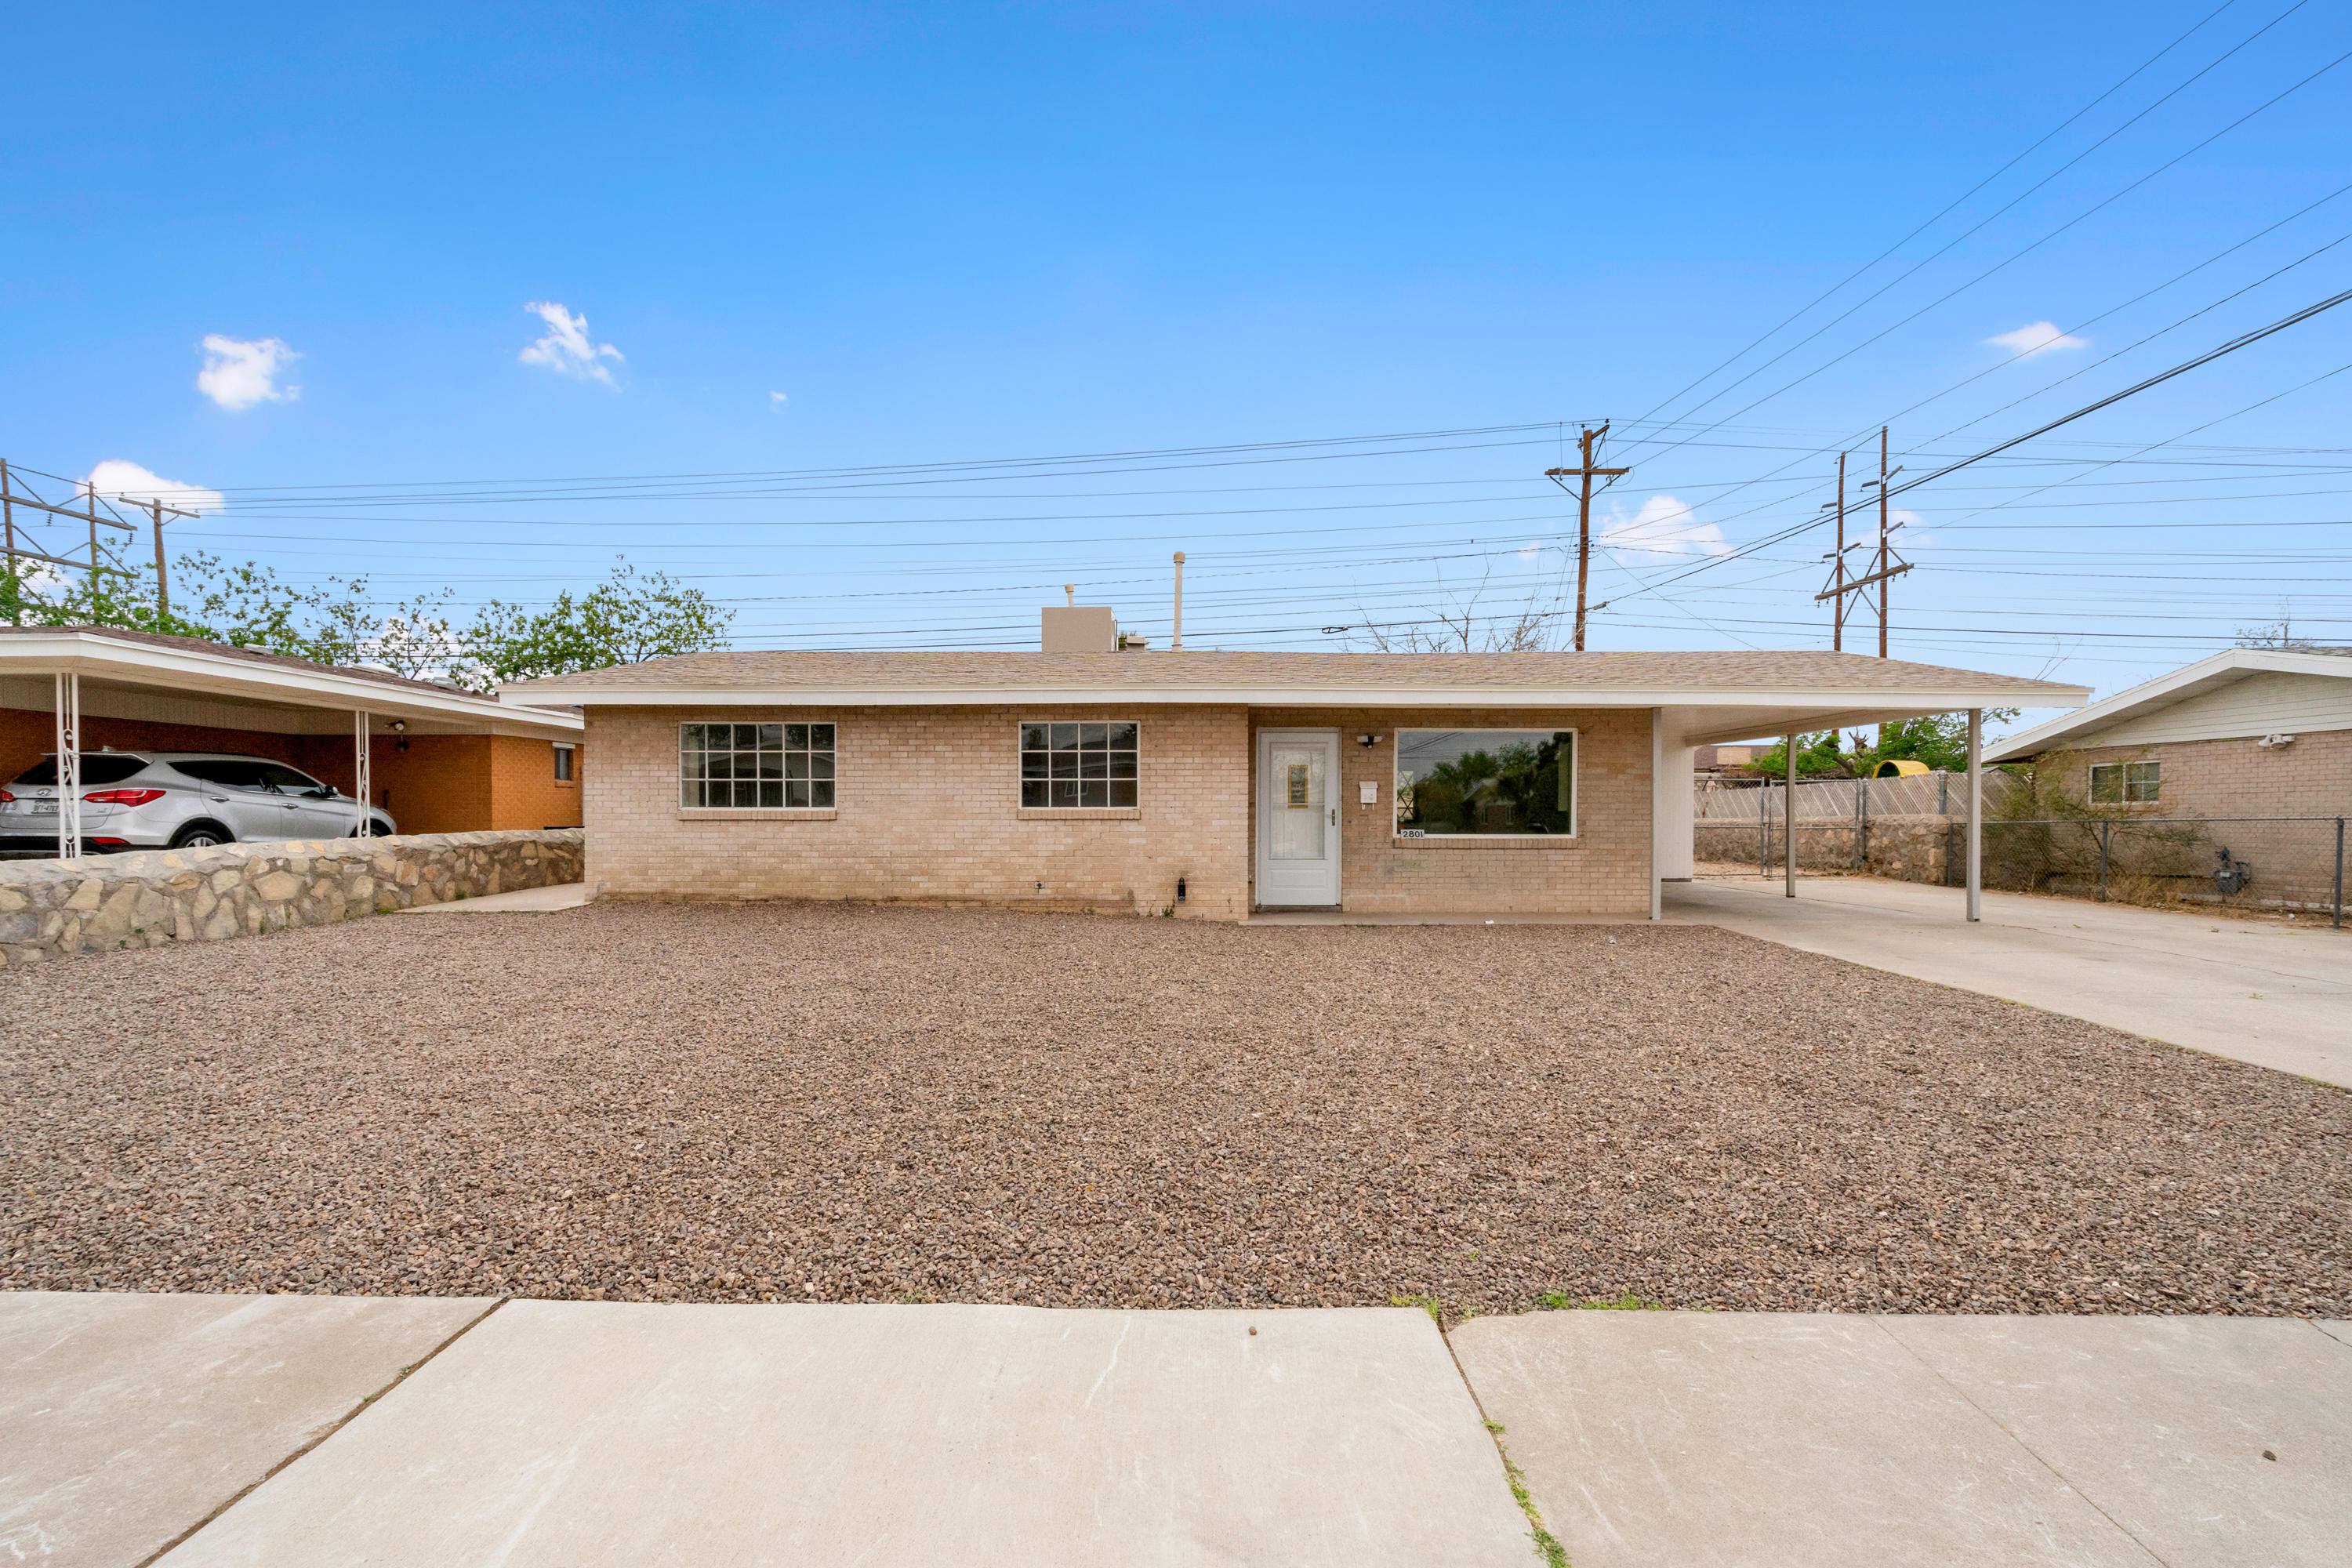 2801 CATNIP, El Paso, Texas 79925, 3 Bedrooms Bedrooms, ,1 BathroomBathrooms,Residential,For sale,CATNIP,844293